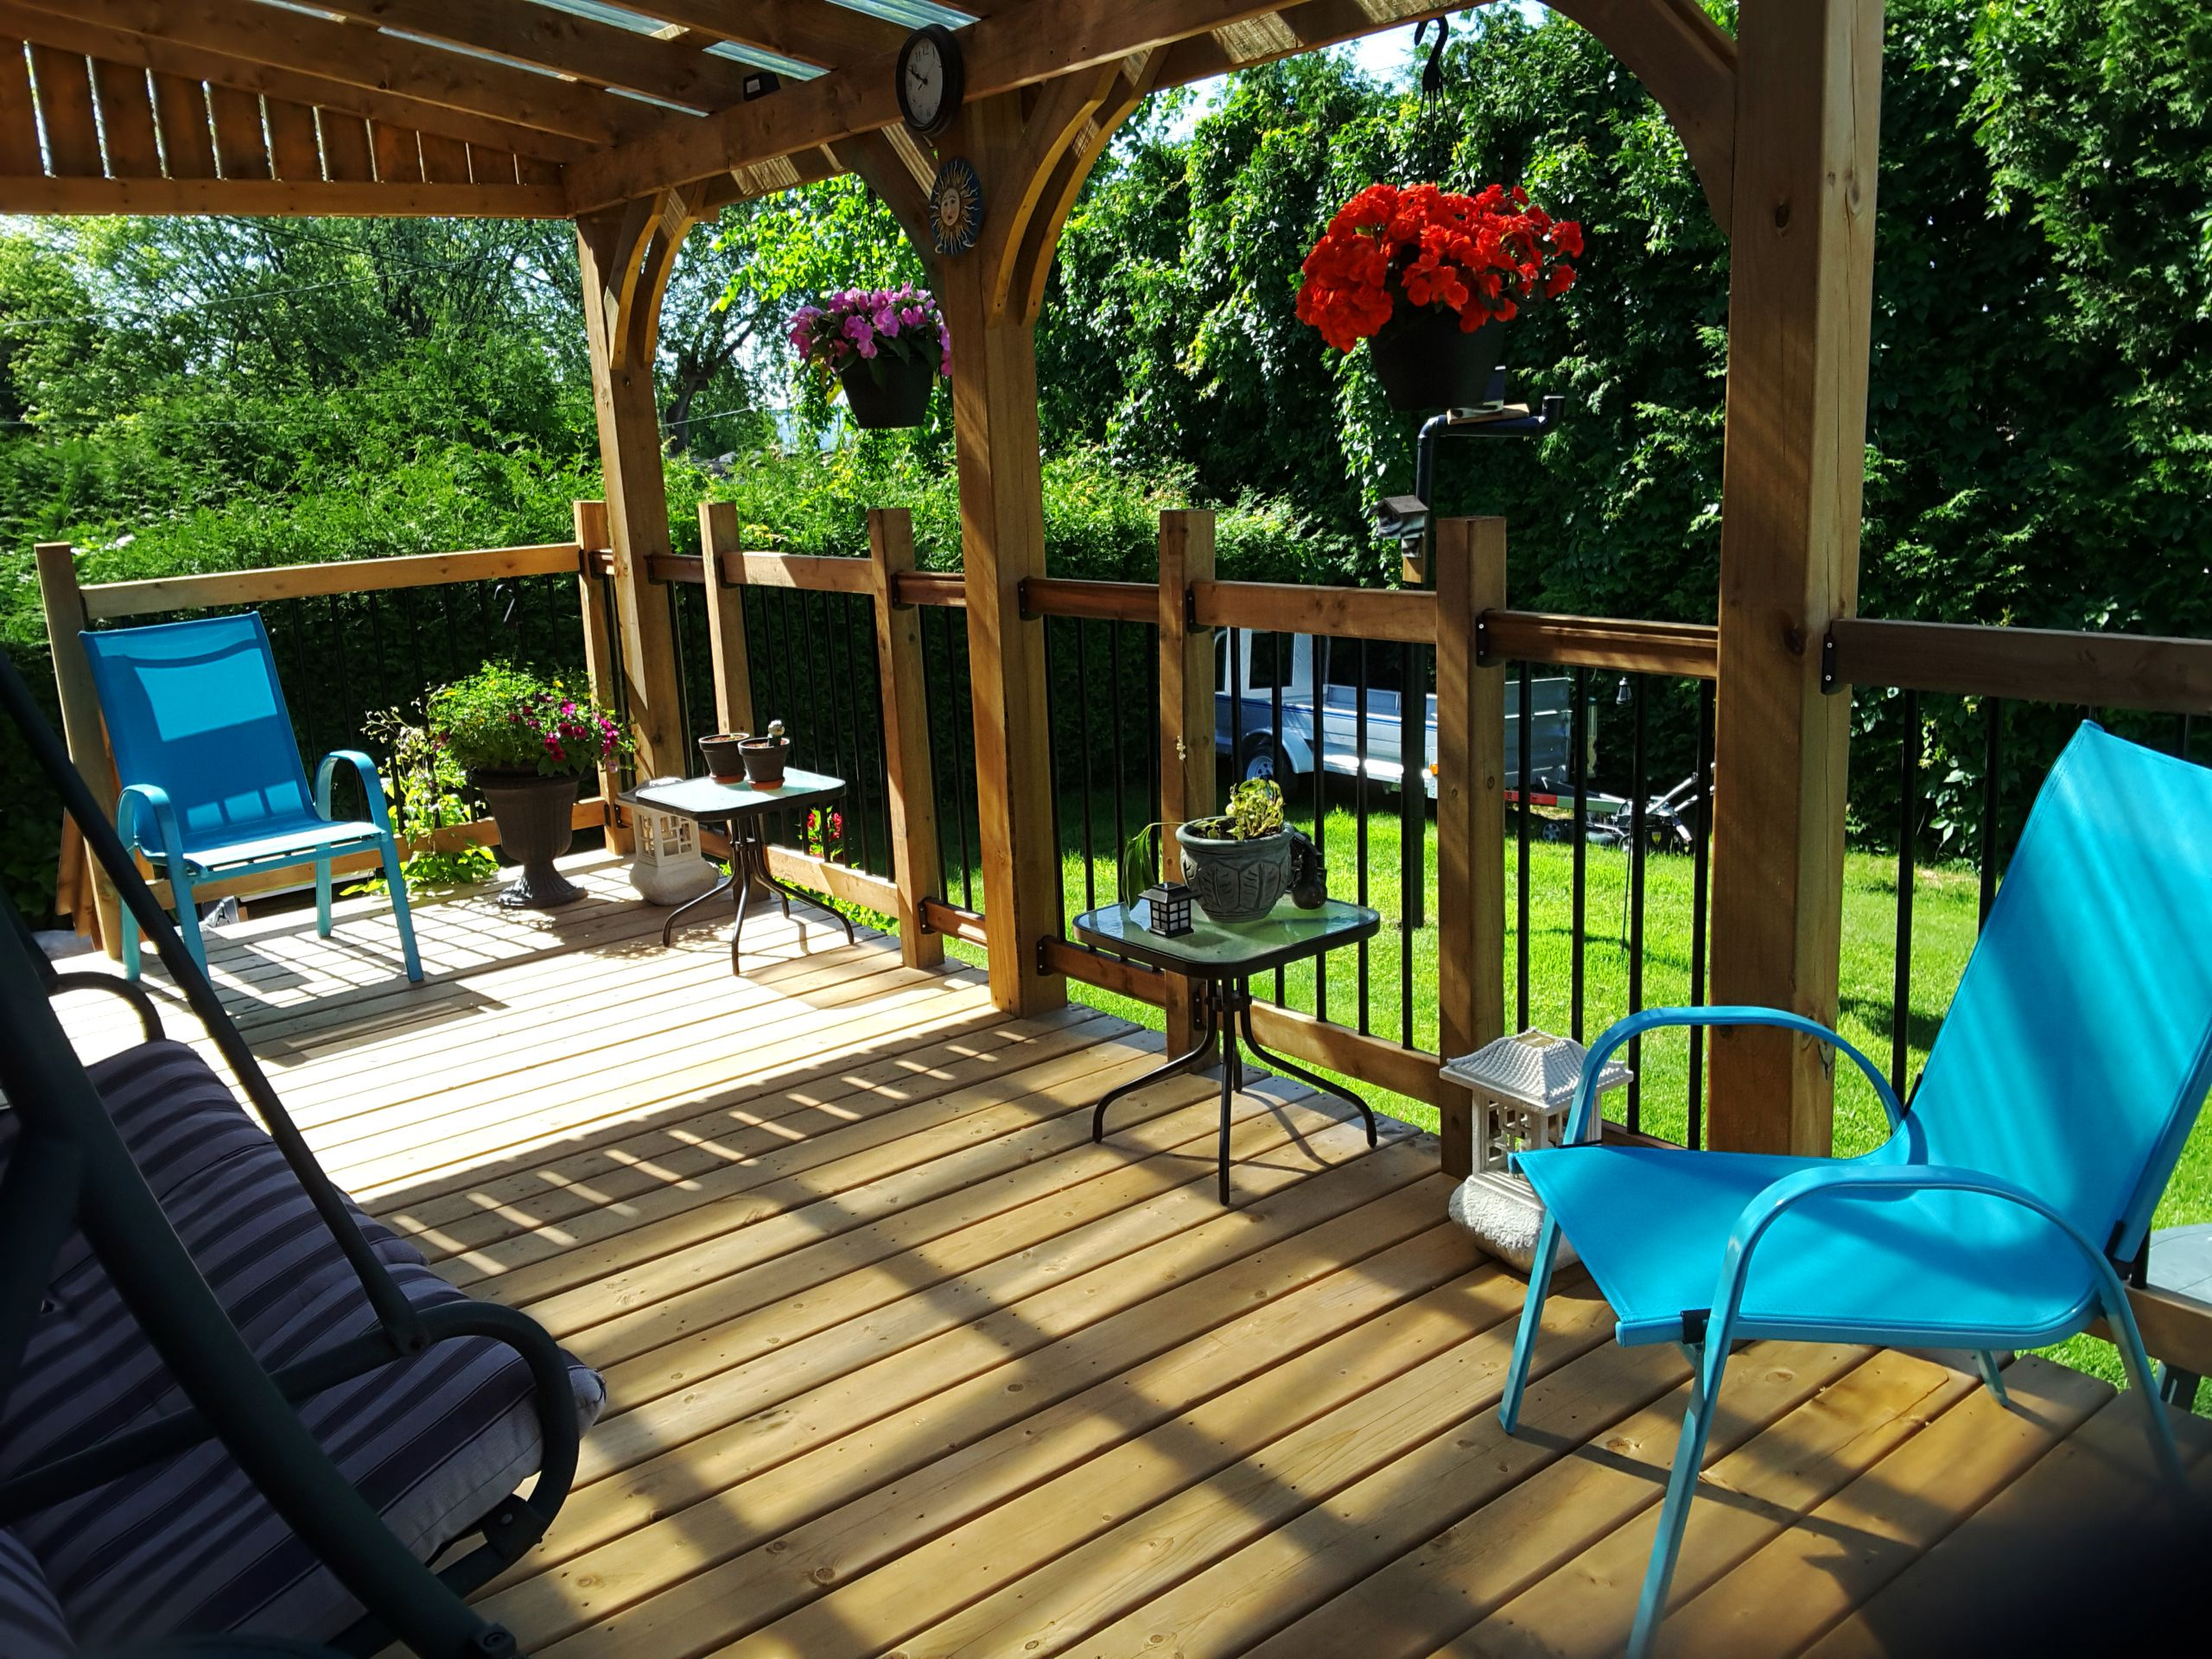 9 Outdoor Deck Designs, Types And Locations